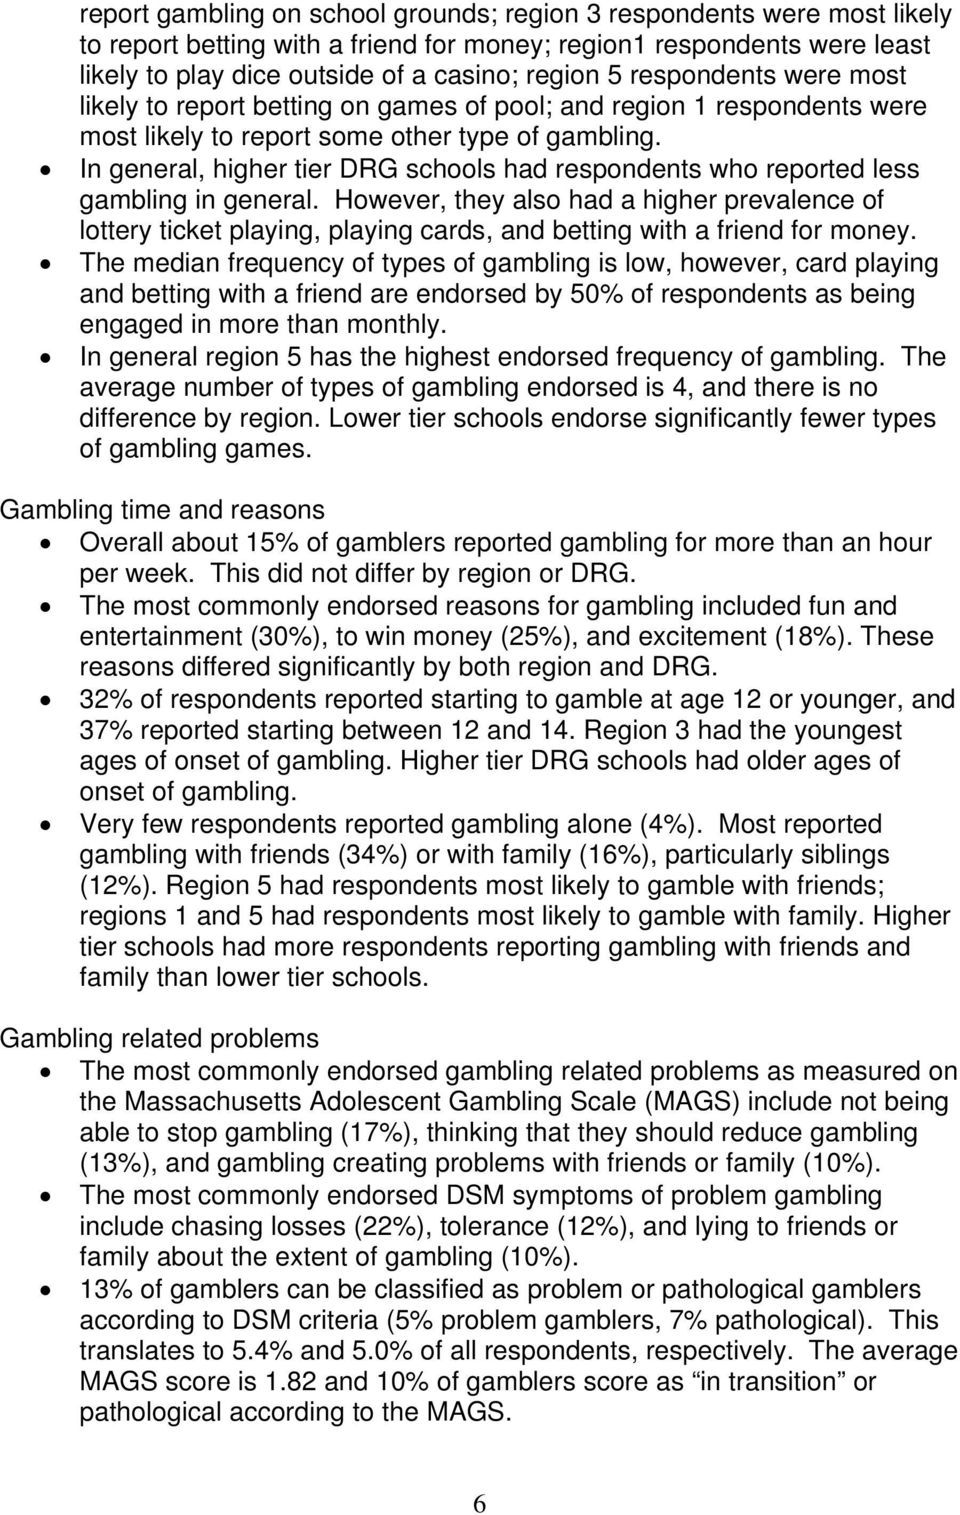 In general, higher tier DRG schools had respondents who reported less gambling in general.